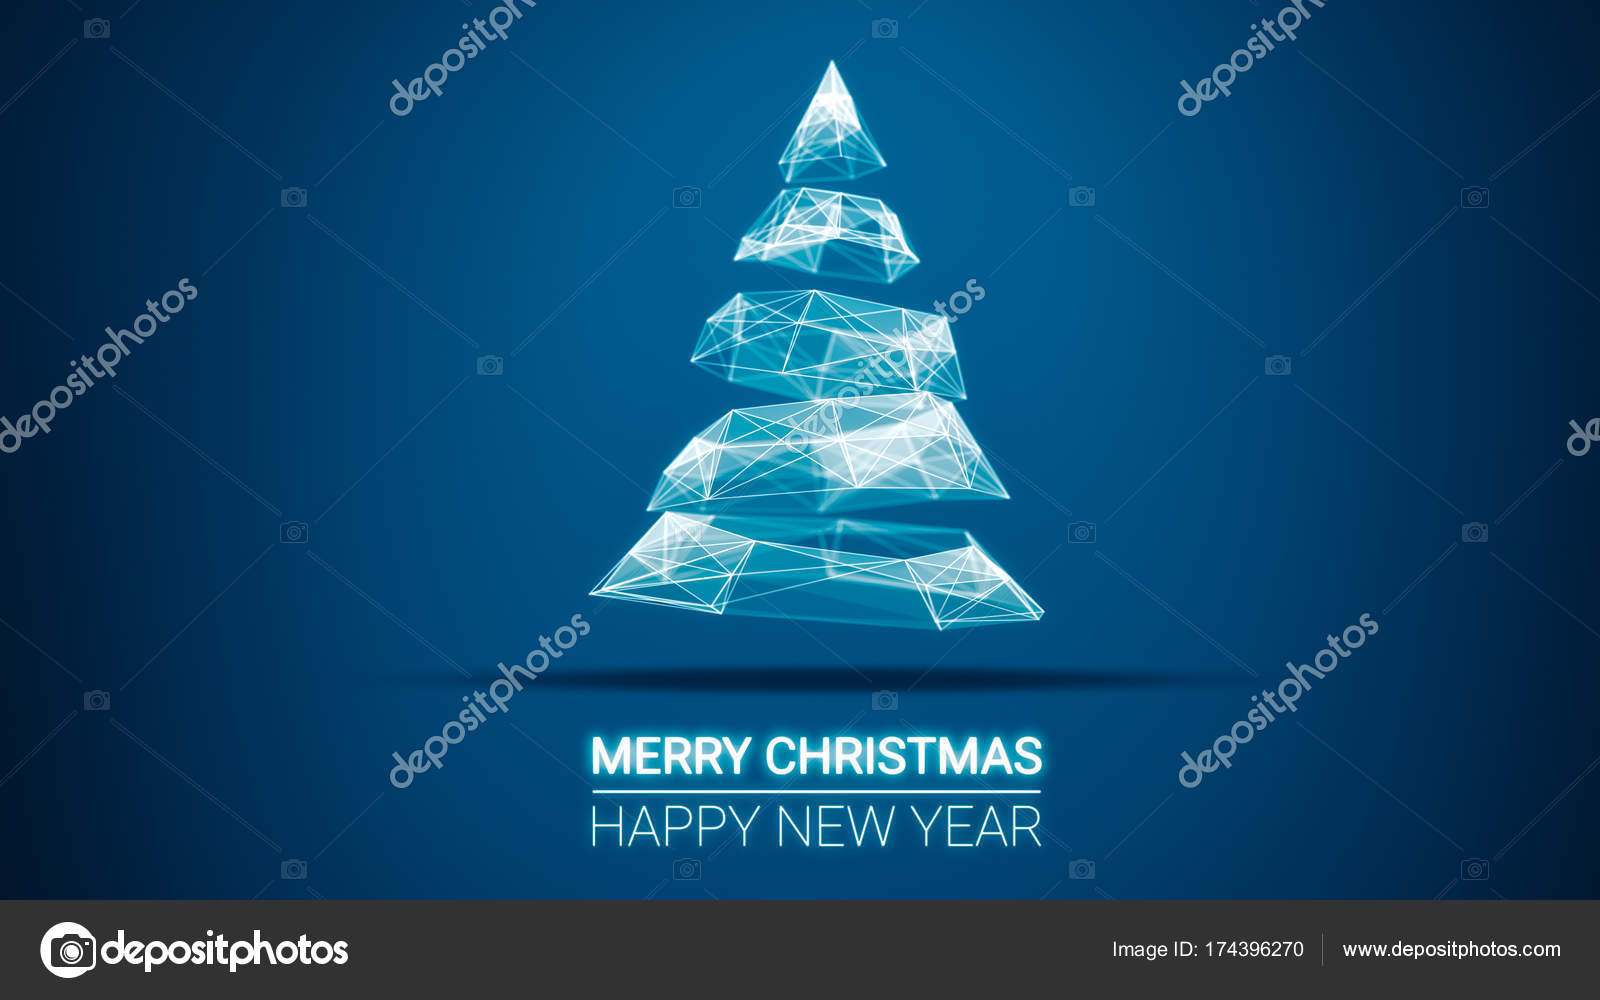 Modern Future Christmas Tree And Merry Christmas And Happy New Year